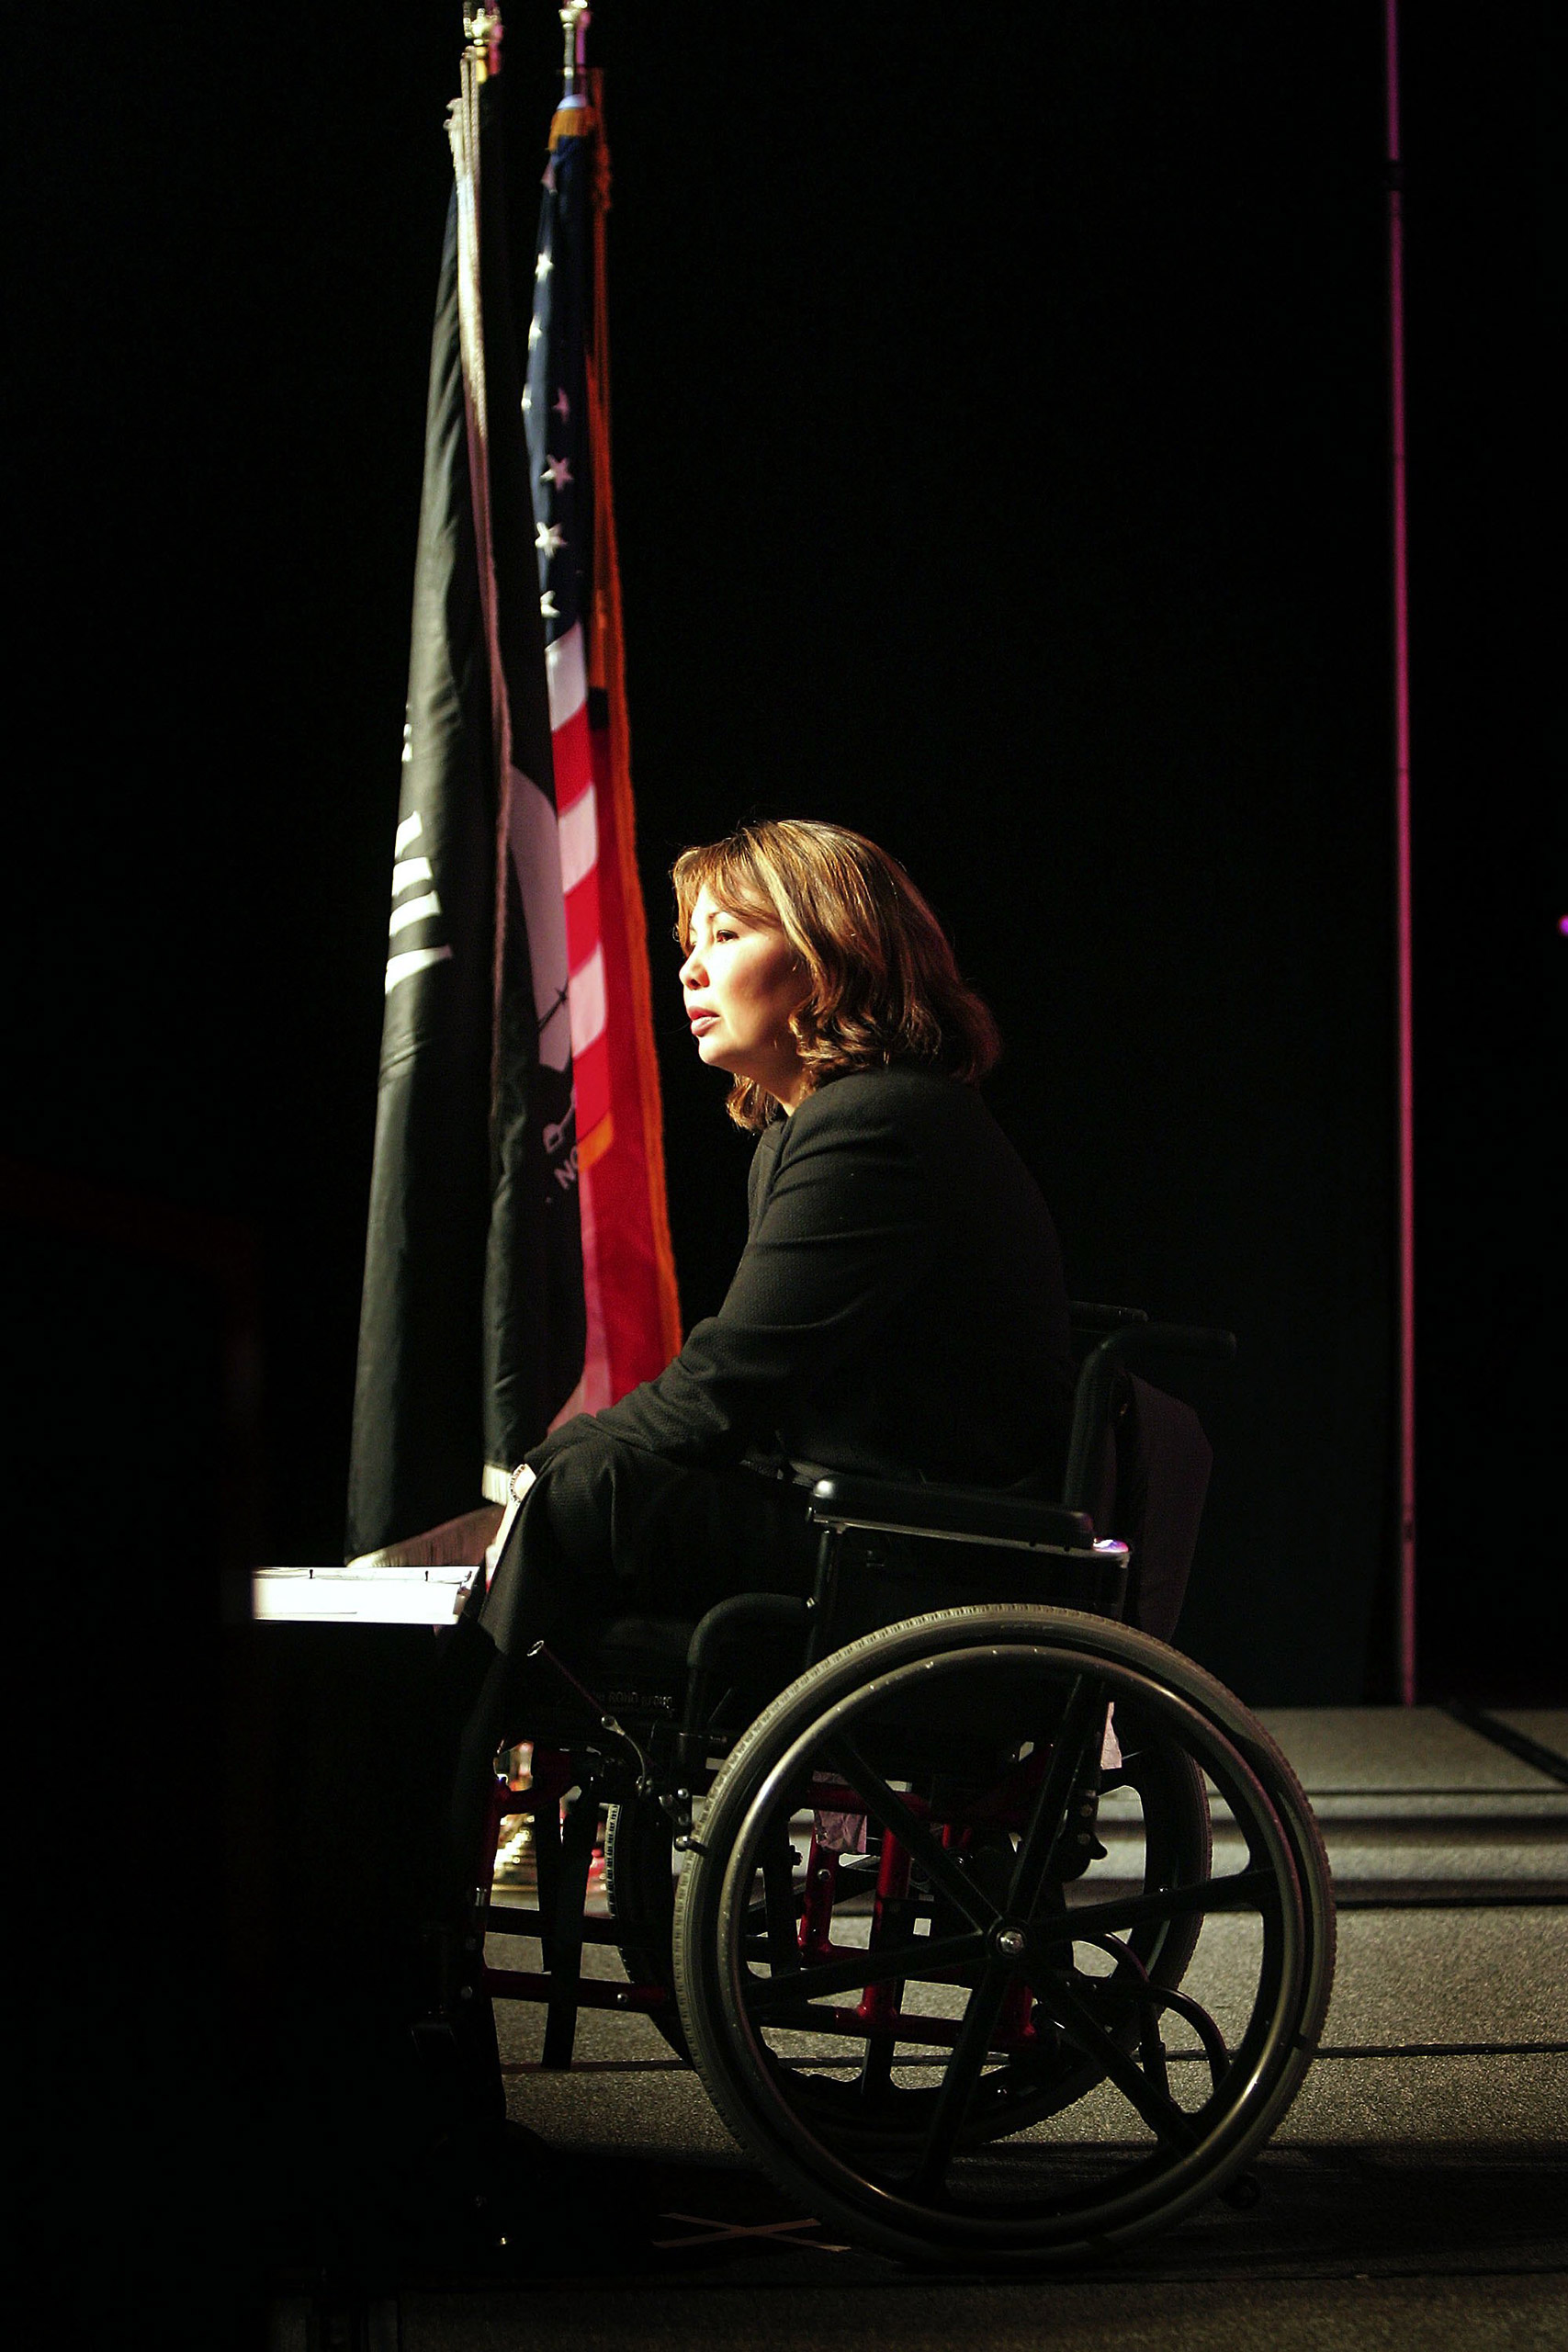 Tammy Duckworth speaks to the National Symposium for the Needs of Young Veterans hosted by AMVETS October 19, 2006 in Chicago, Illinois.